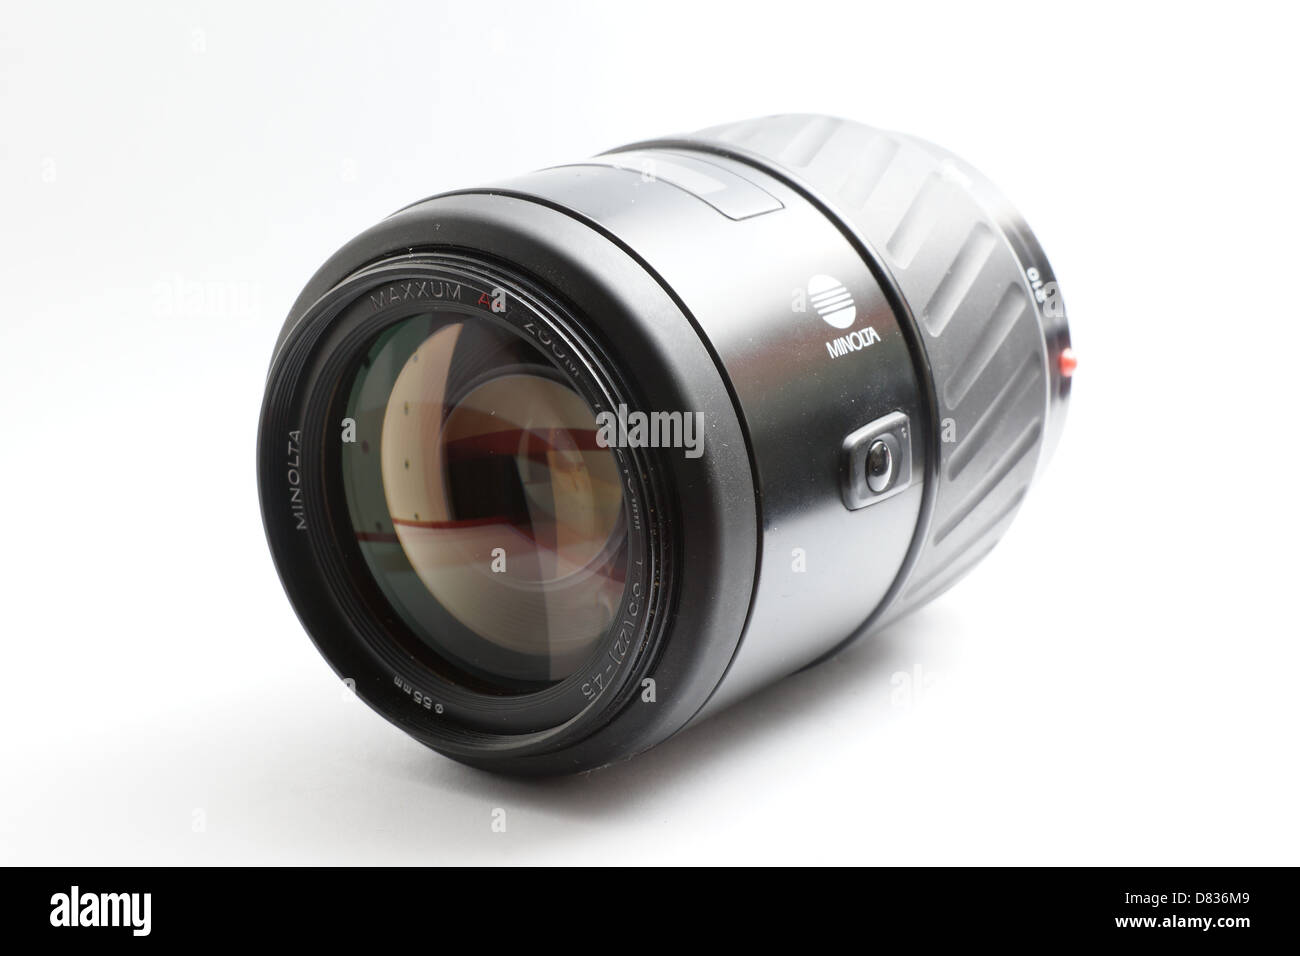 Camera lens for Minolta Maxxum, 70-210mm f3.5-4.5 zoom - Stock Image